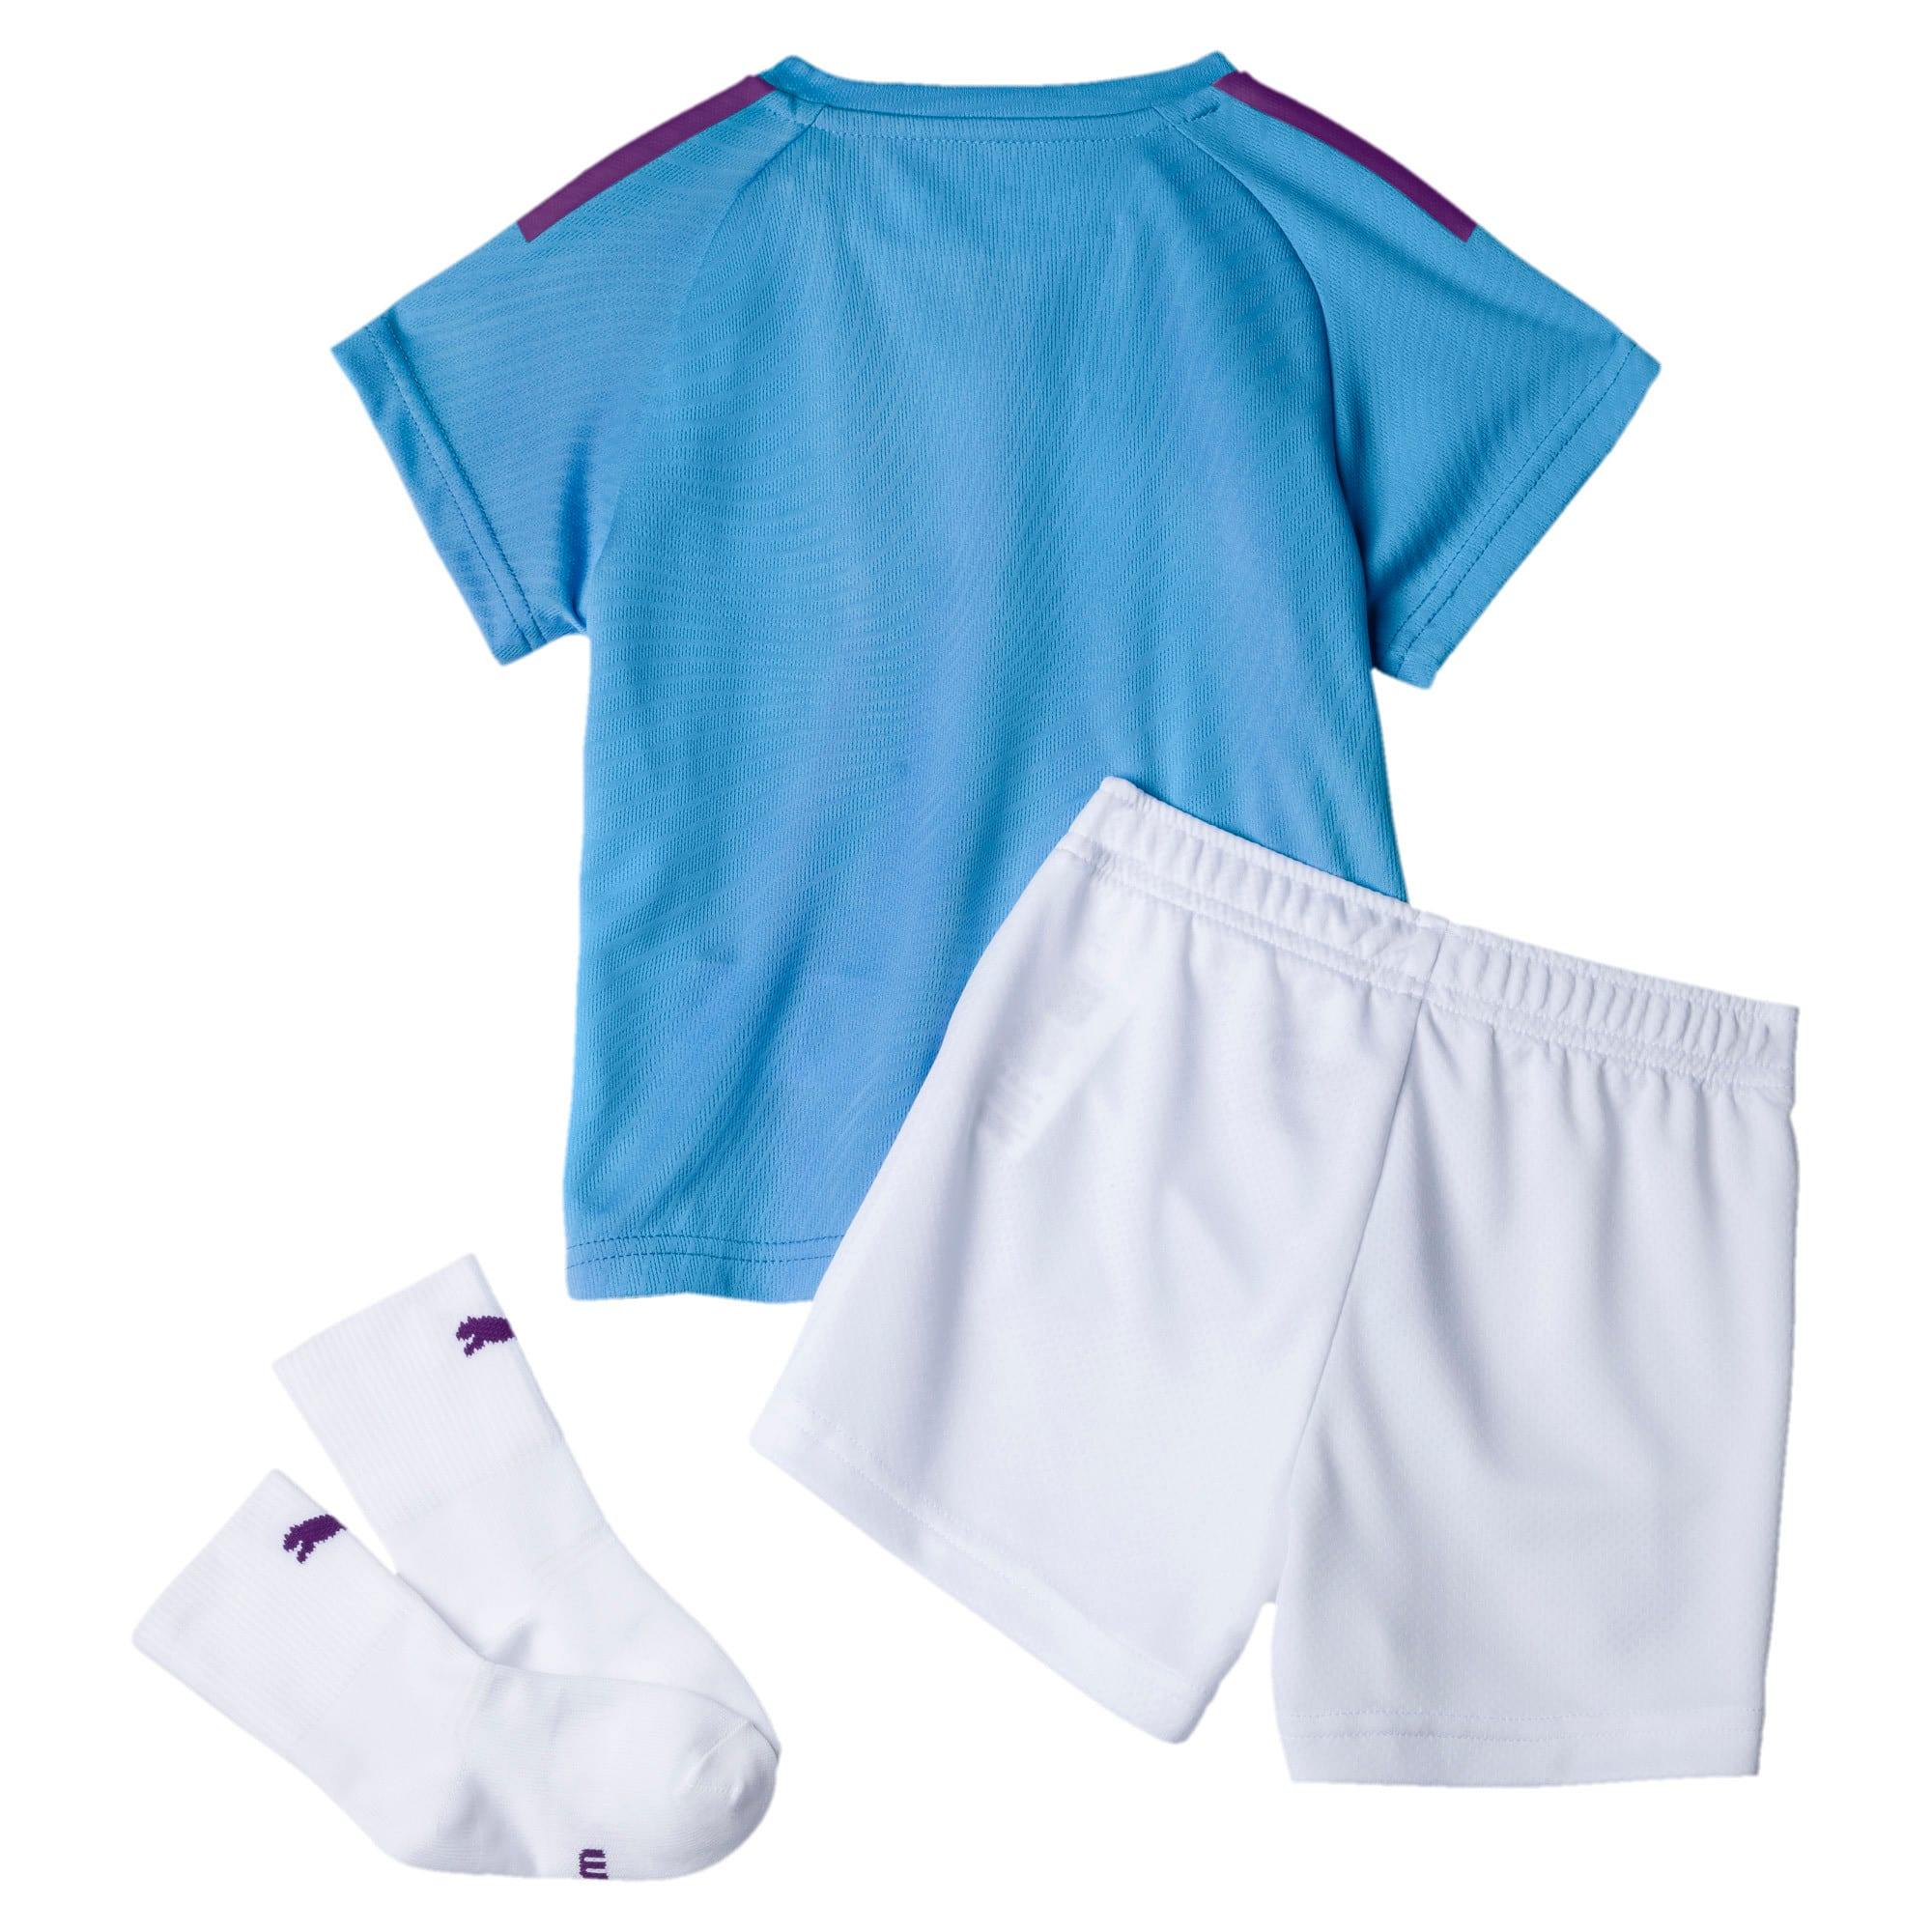 Thumbnail 2 of Man City Babies' Home Mini Kit, TeamLightBlue-TillandsiaPurp, medium